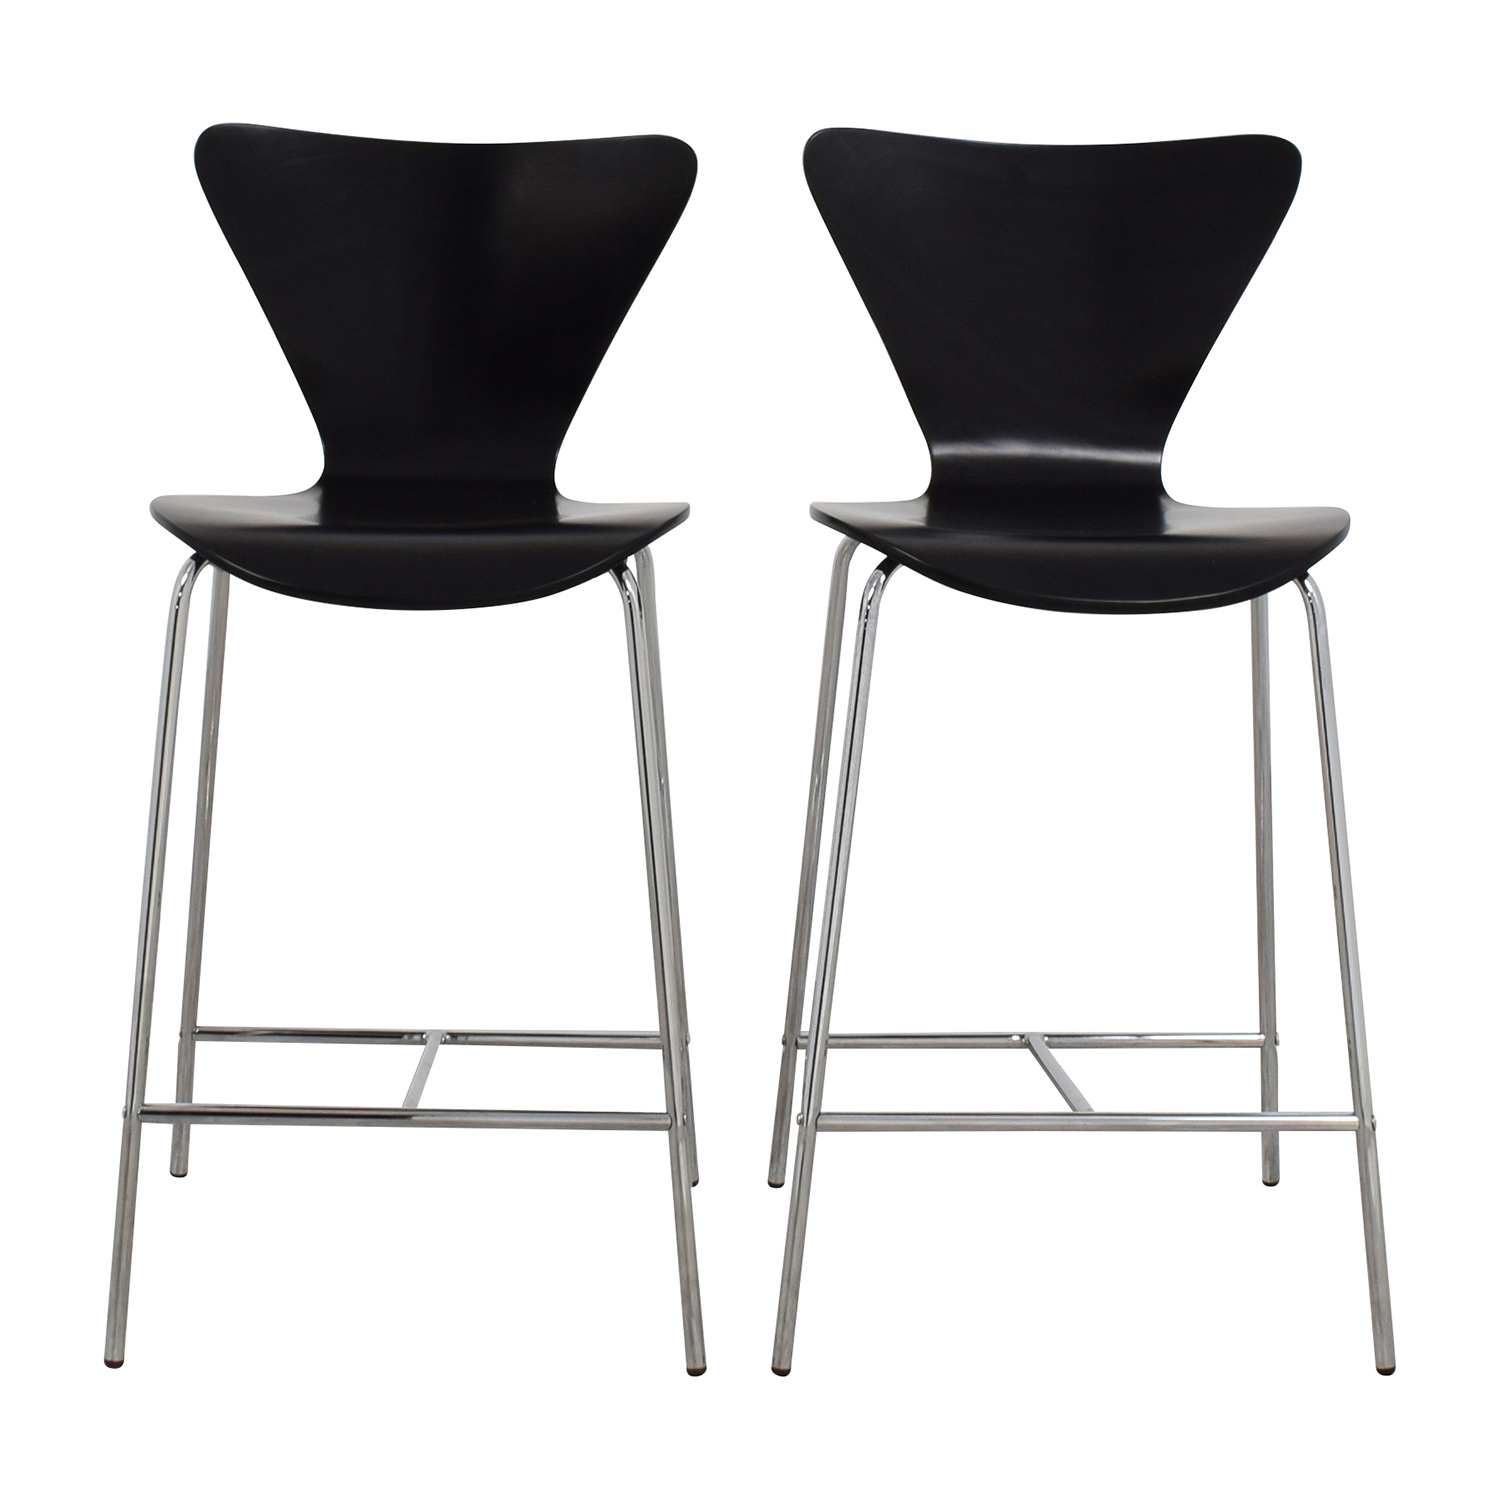 InMod InMod Tendy-C Counter Chair Black dimensions